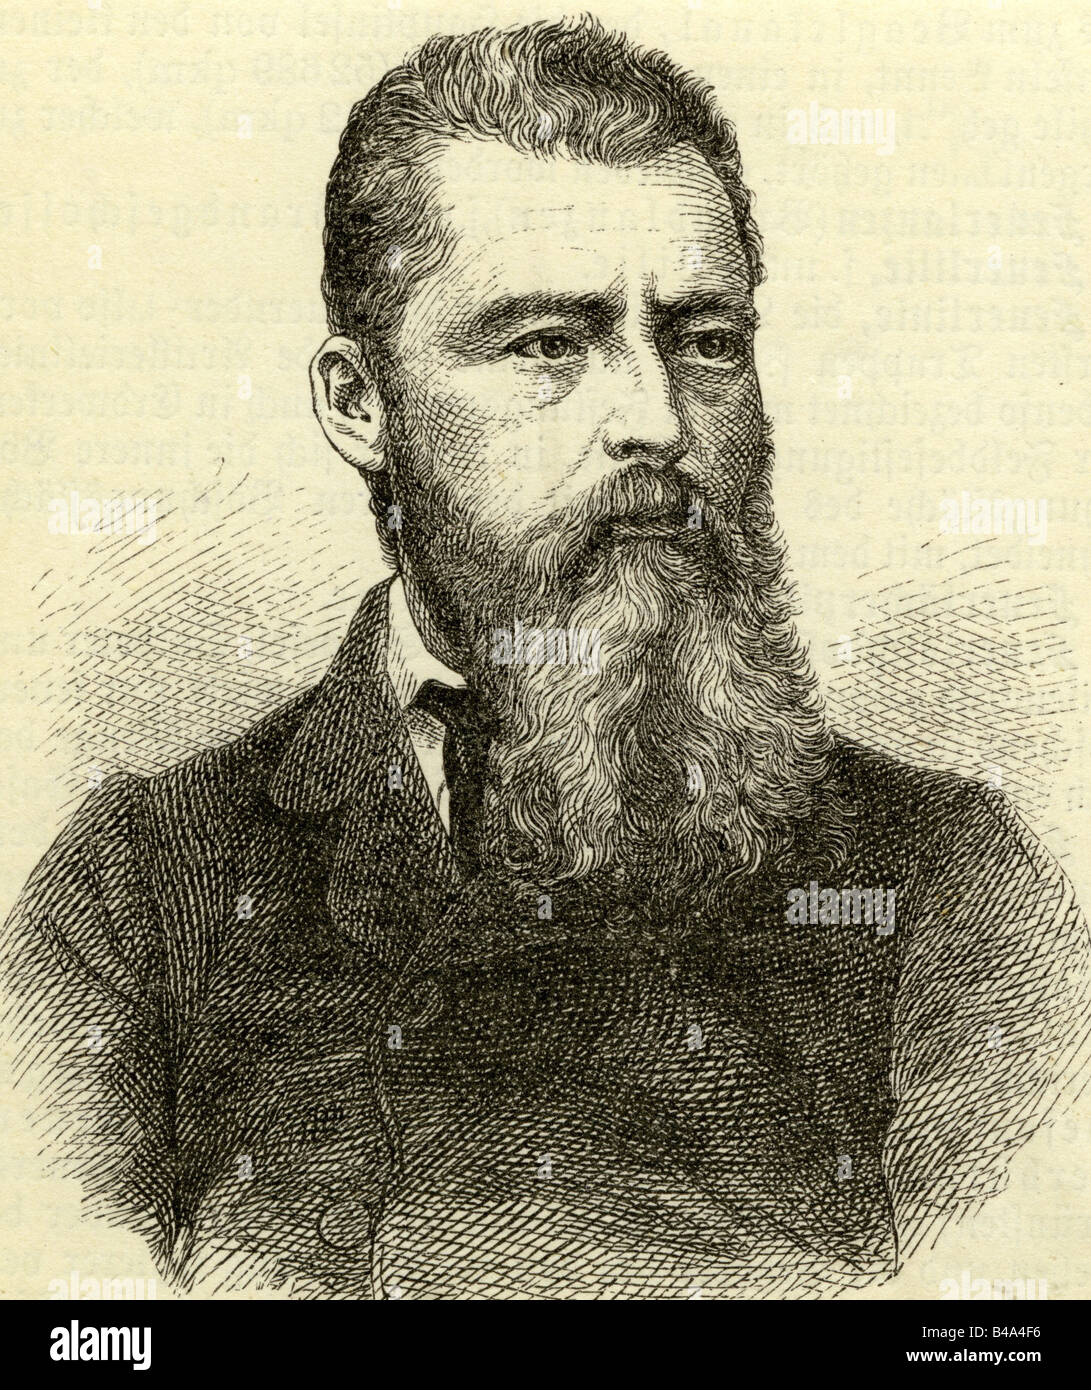 Feuerbach, Ludwig, 28.7.1804 - 13.9.1872, German philosopher, portrait, engraving, 19th century, , Additional-Rights - Stock Image